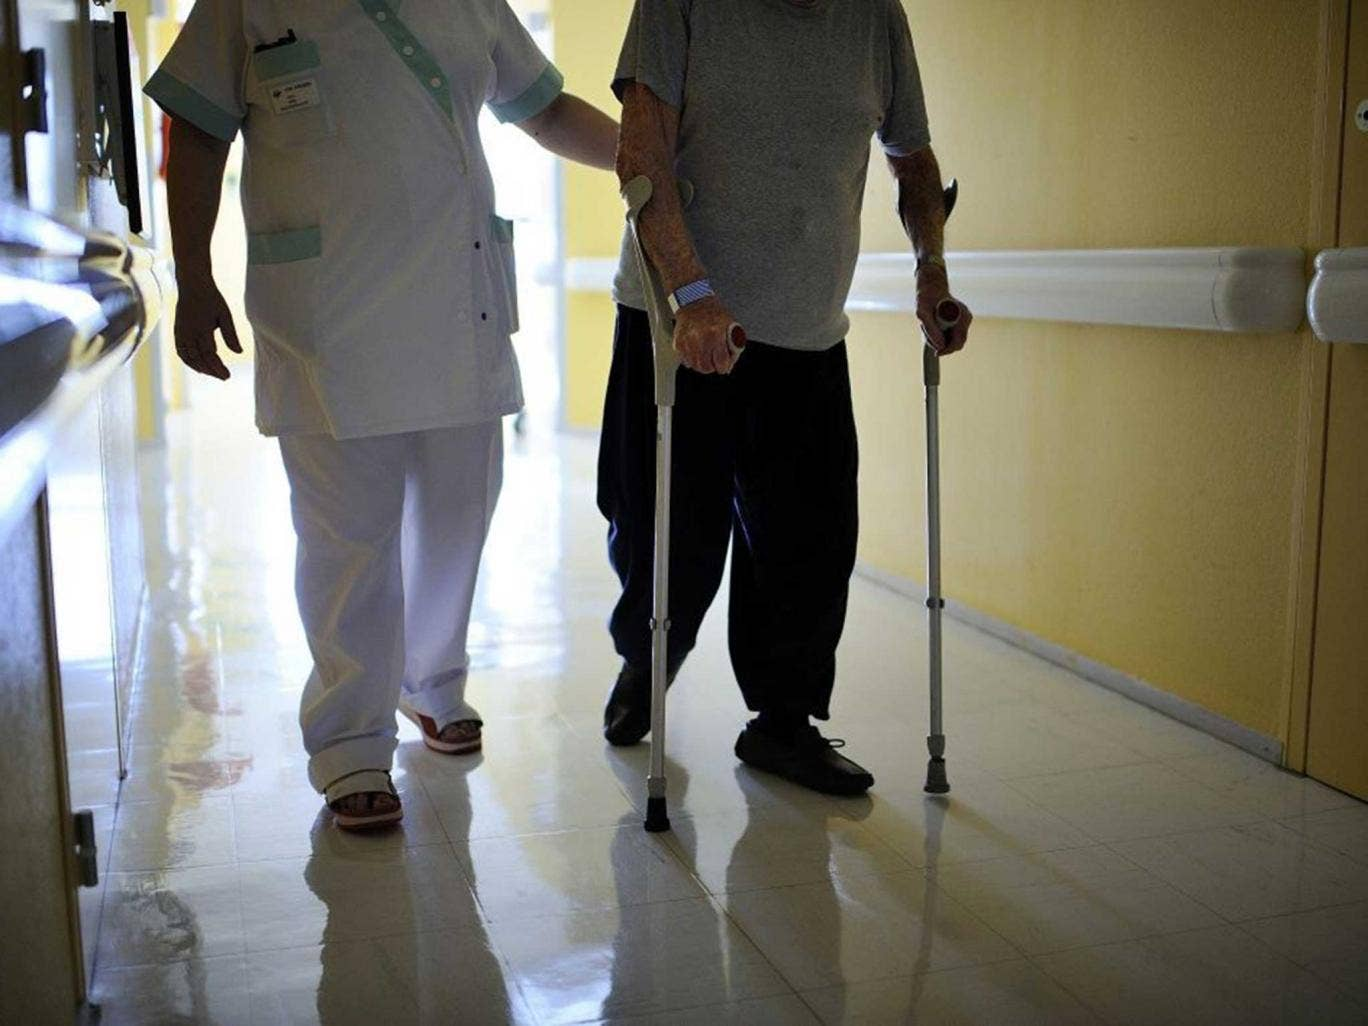 Step change: Younger medics should know more about ageing, say experts